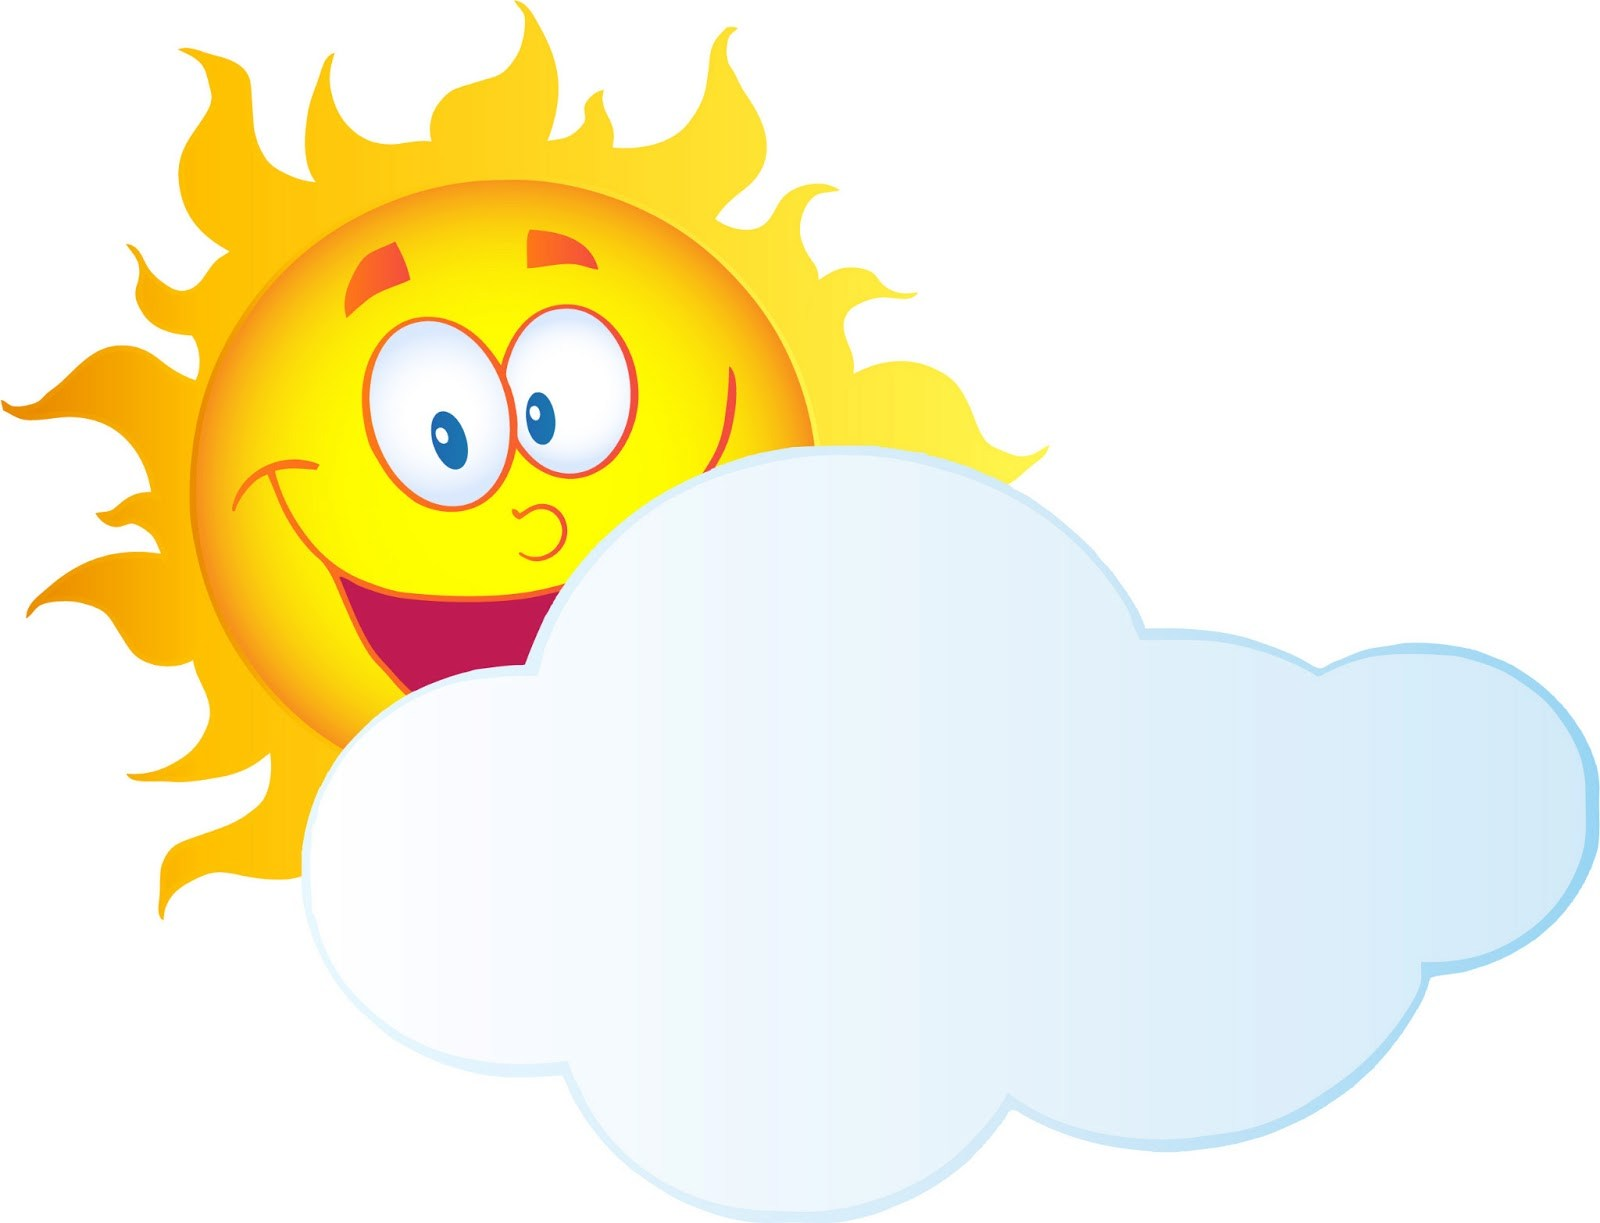 Clouds with sun clipart 3 » Clipart Portal.